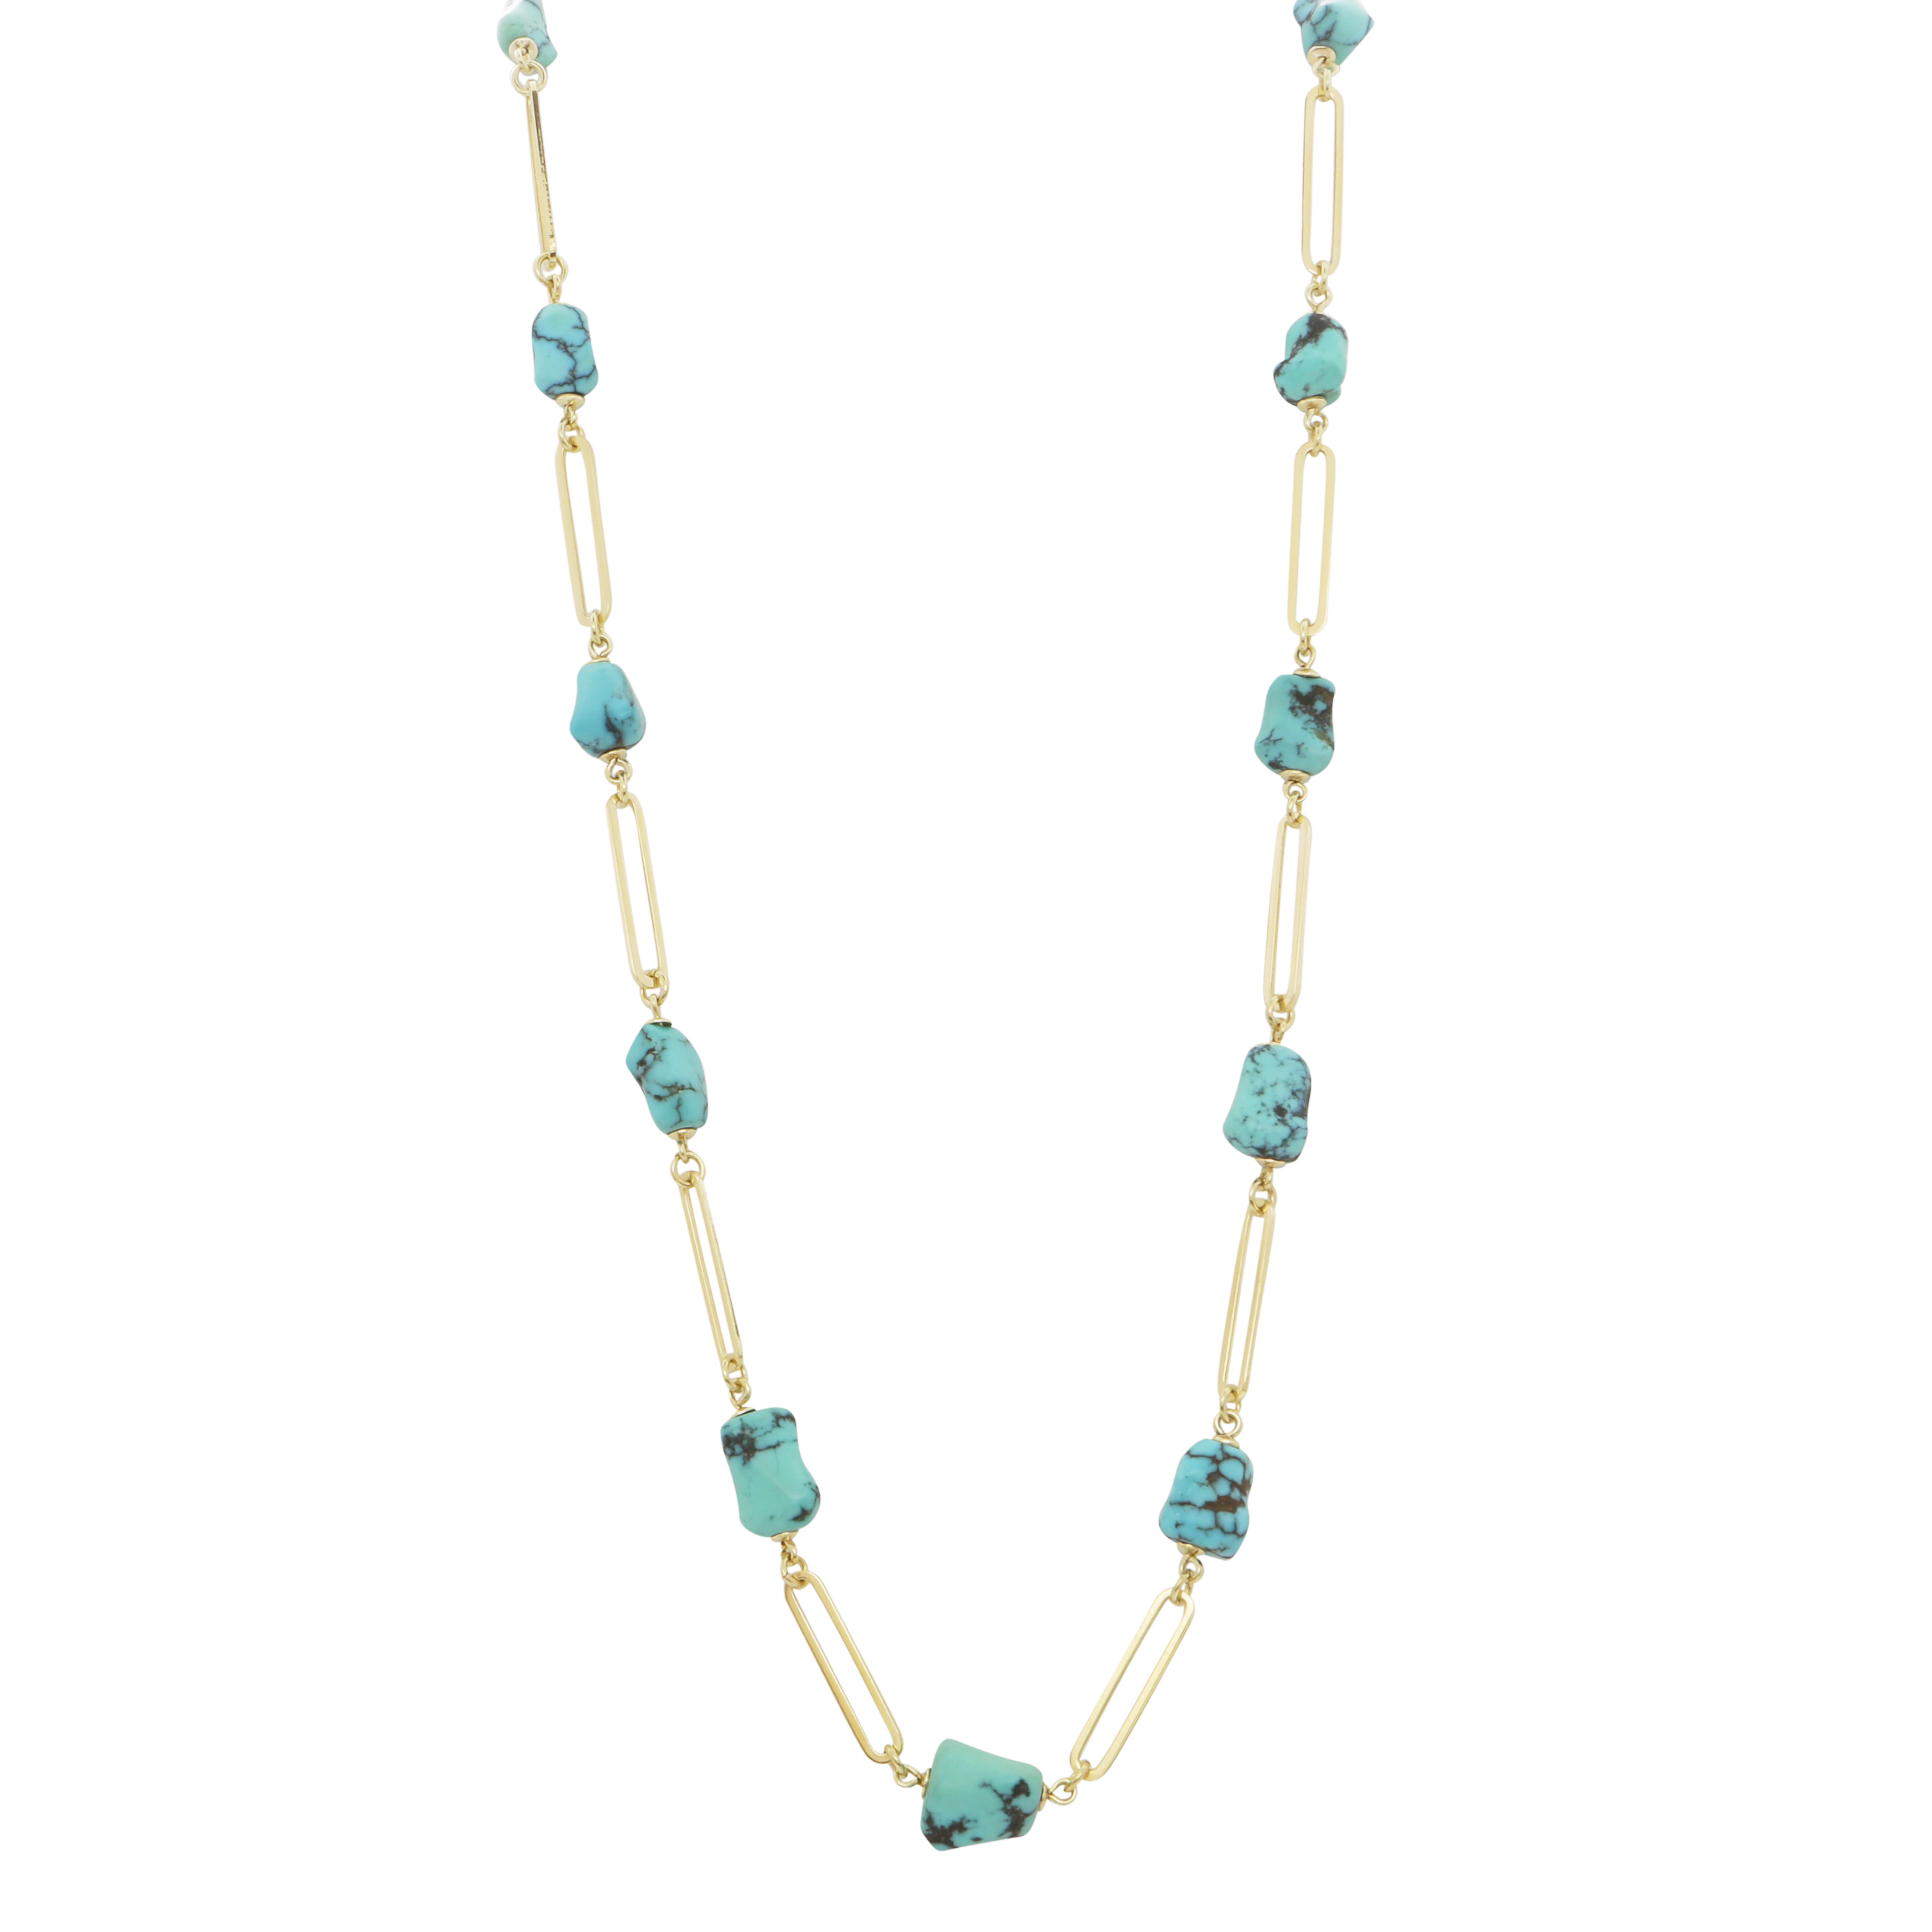 A TURQUOISE FANCY LINK NECKLACE in 14ct yellow gold, the elongated link chain punctuated by thirteen